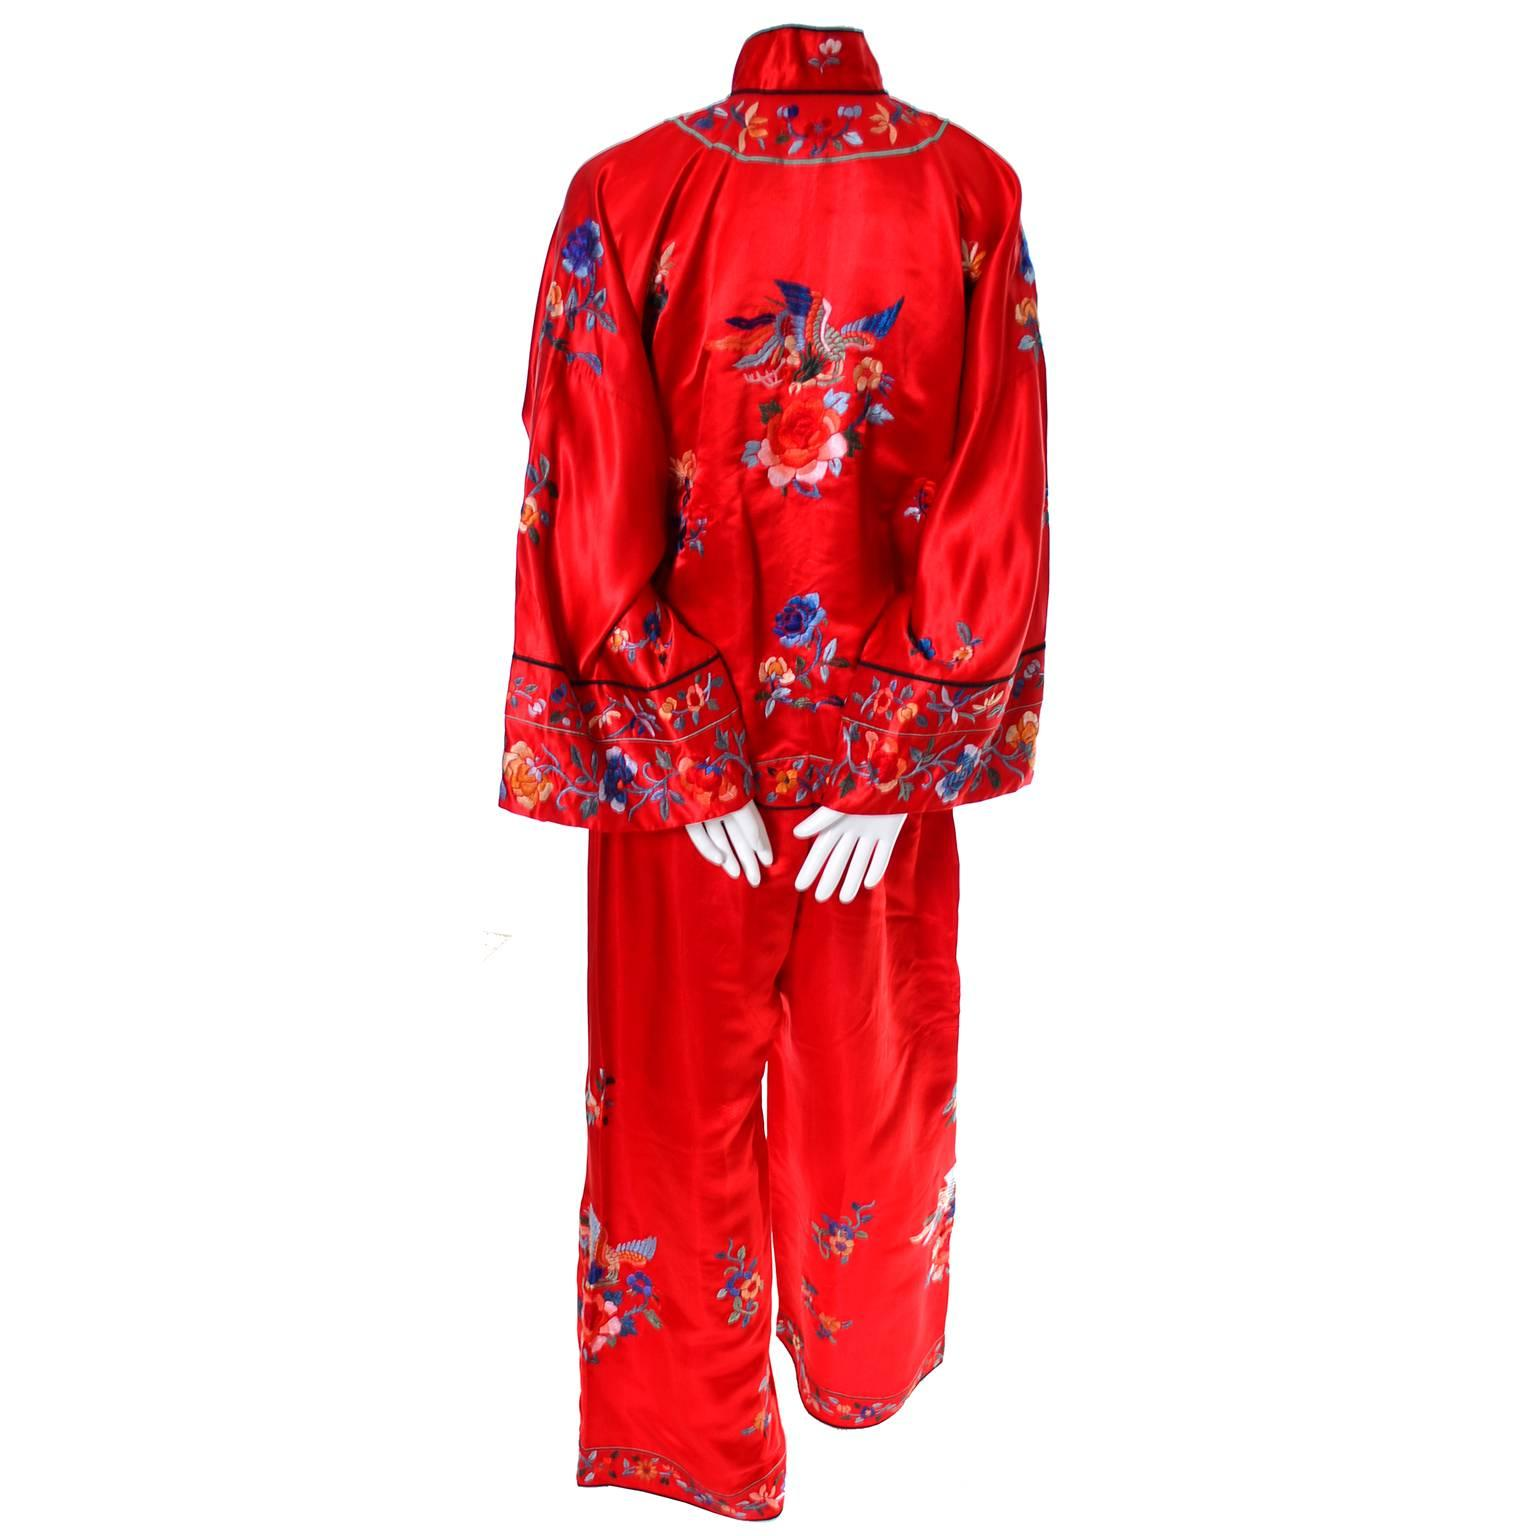 ea4a8805ae 1940s Vintage Chinese Pajamas Red Silk Embroidered Top and Bottoms at  1stdibs